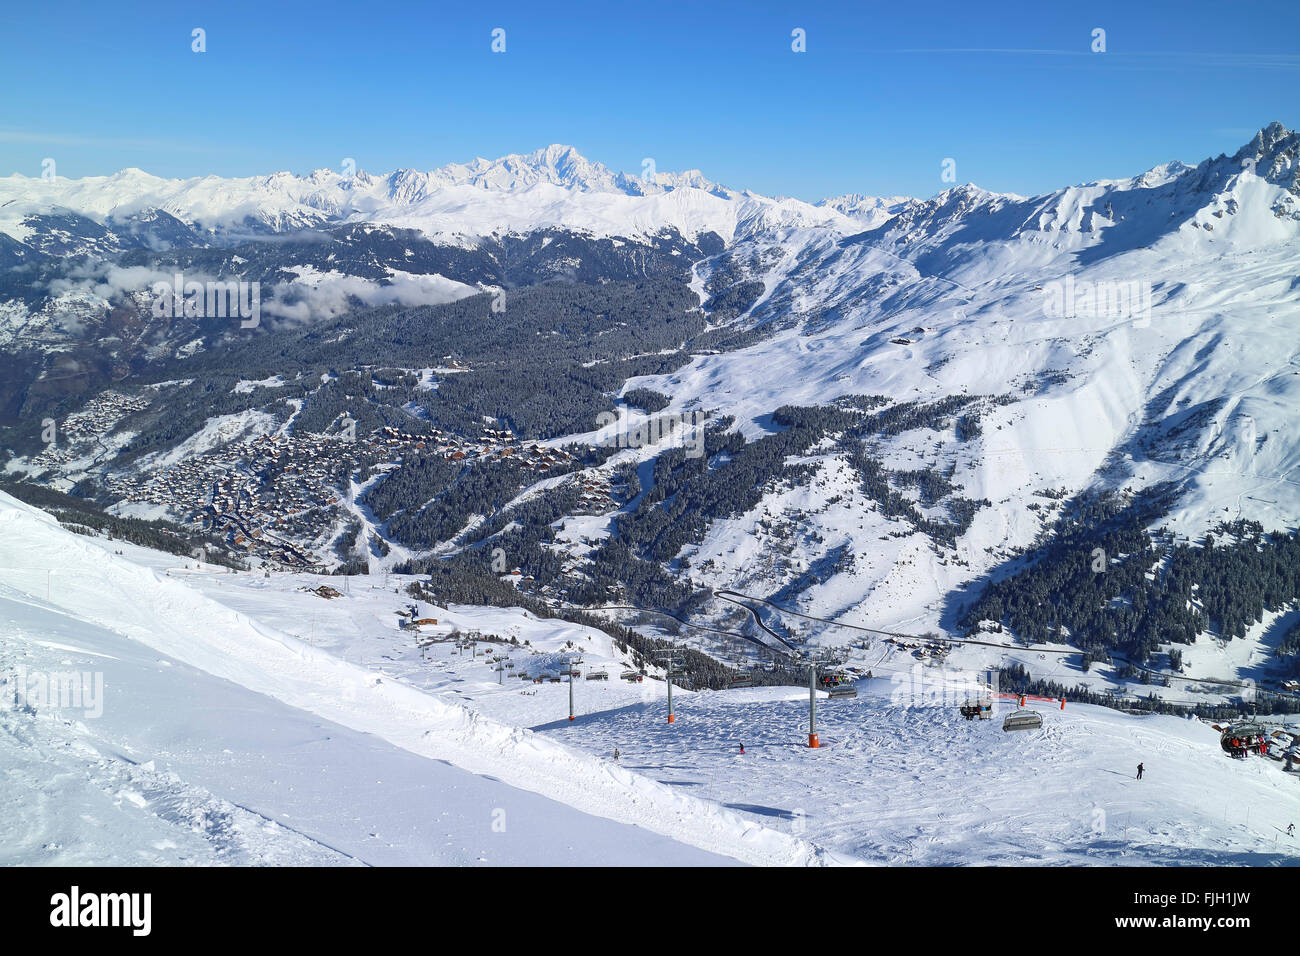 Ski village of Meribel in French Alps Three valleys ski resort, with ski slopes, lifts, chalets Stock Photo